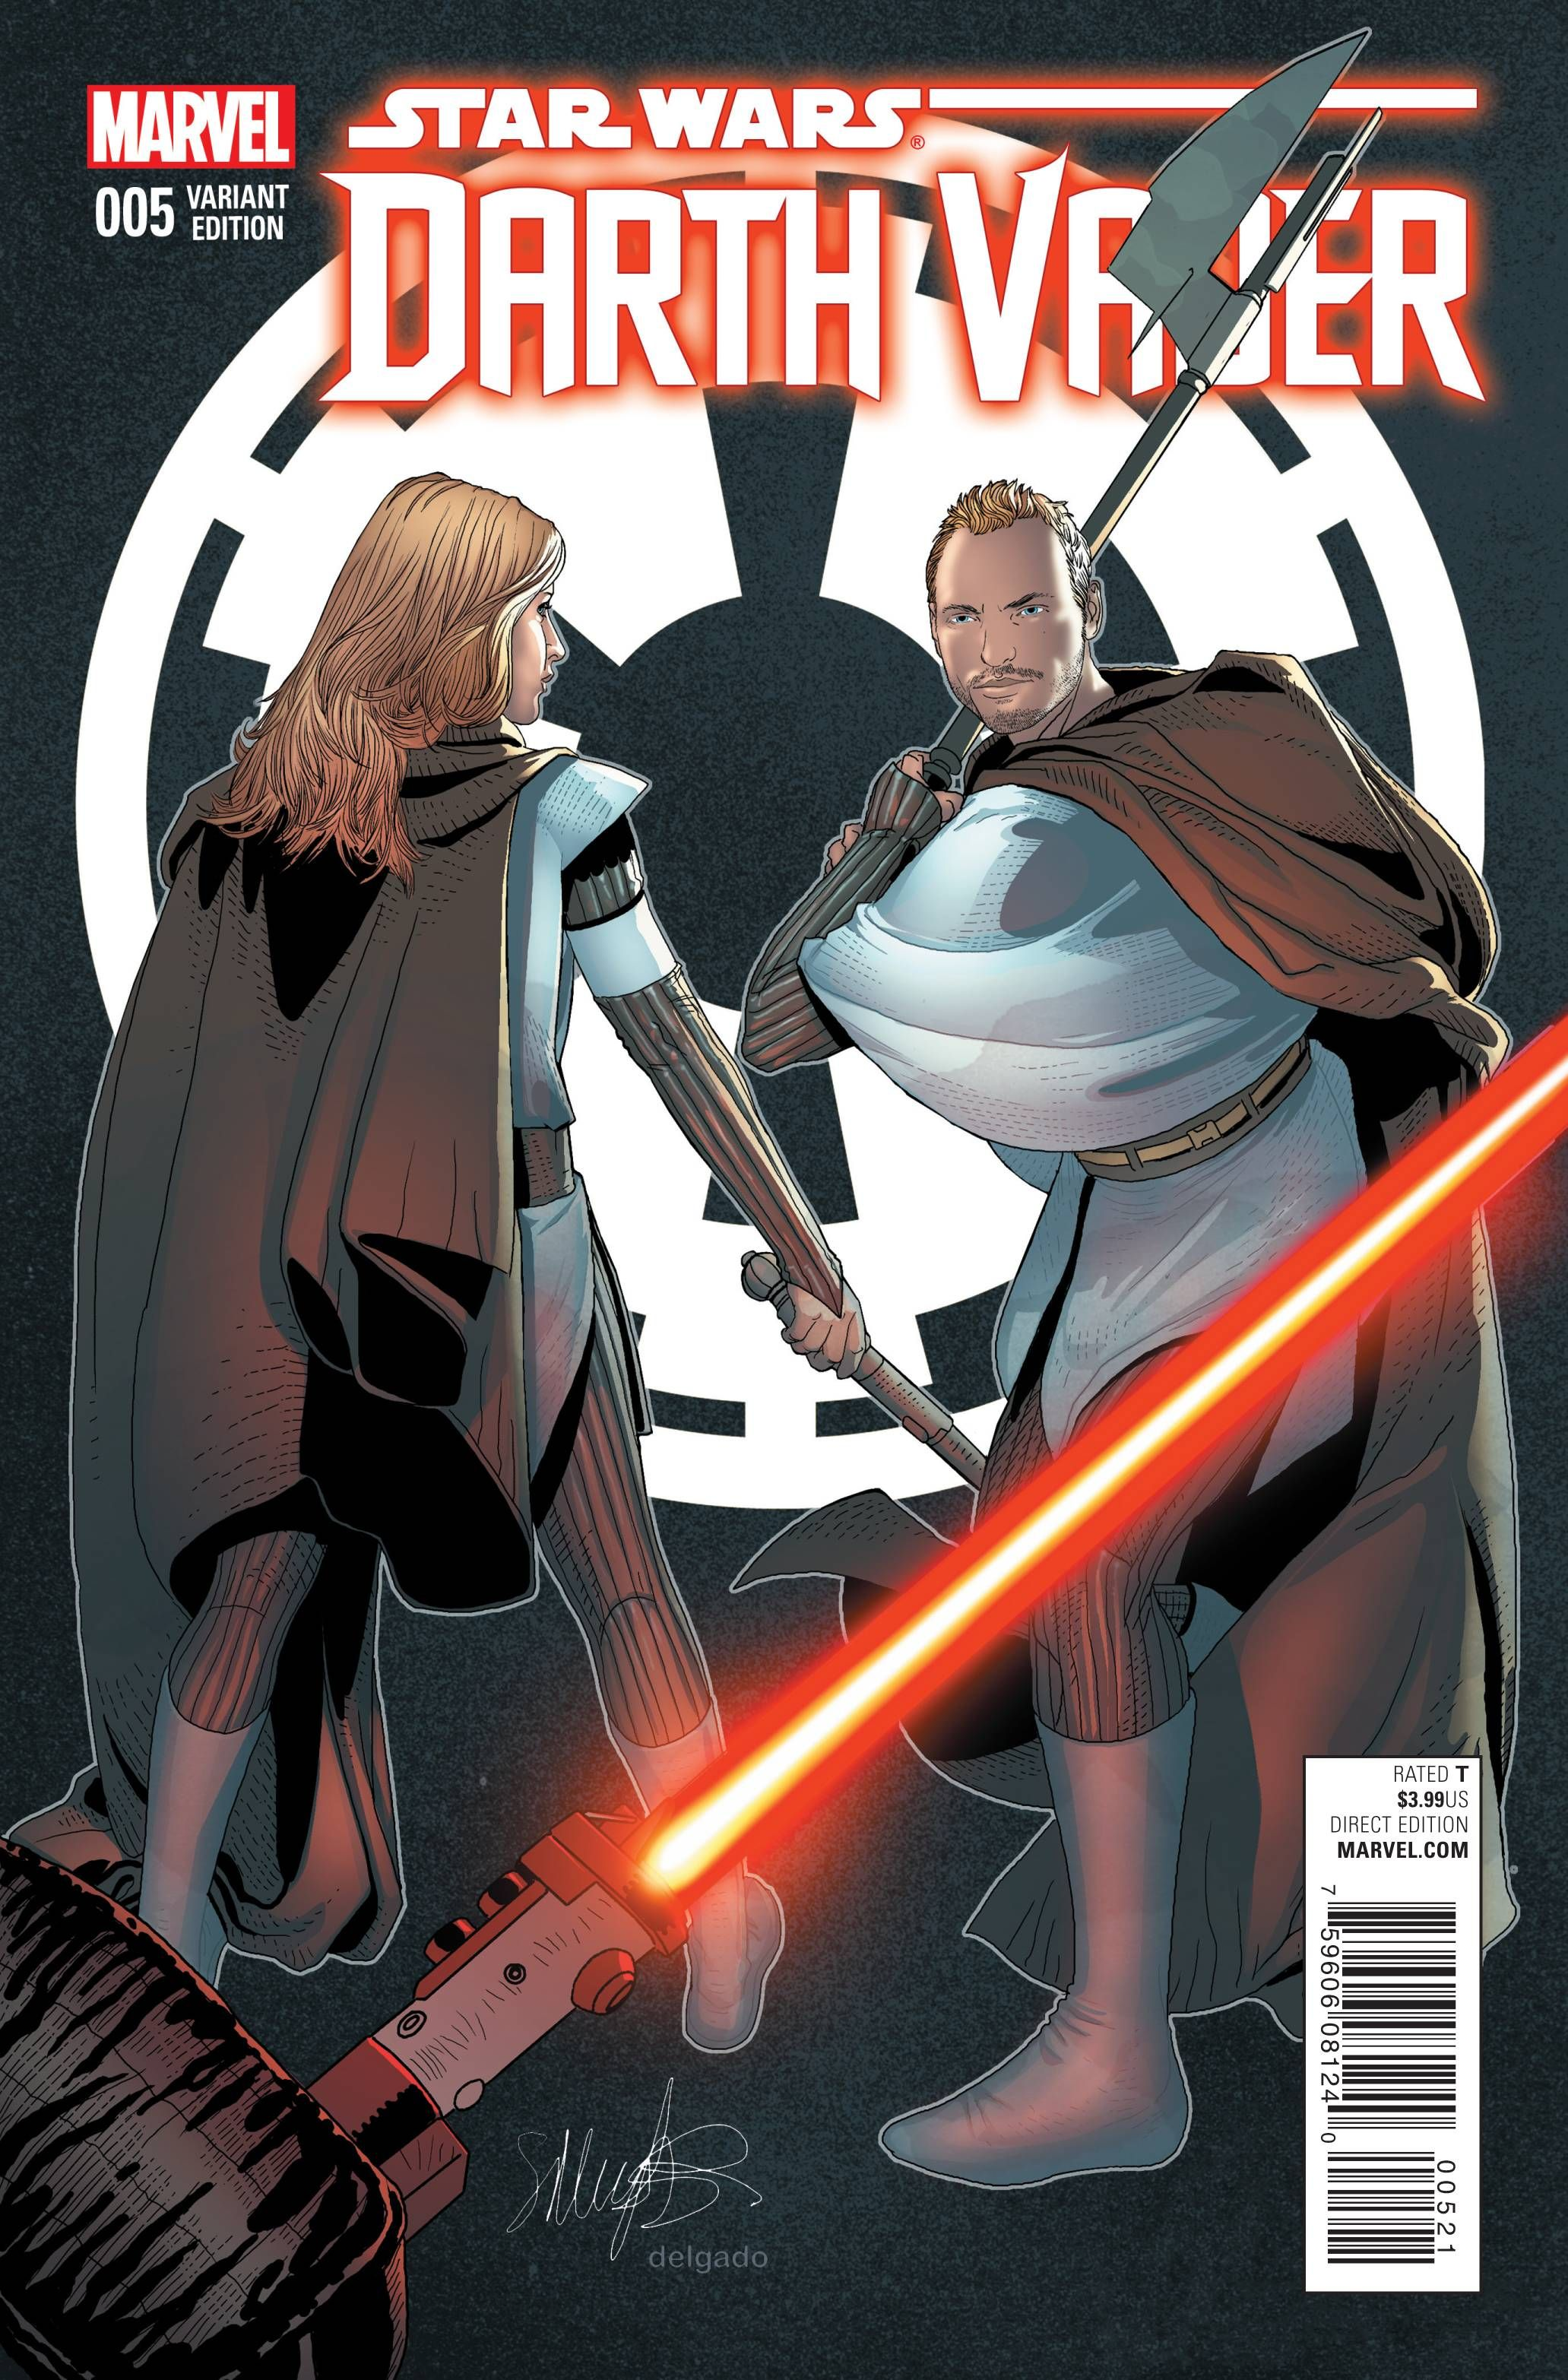 Darth Vader 2015 Issue 5 Read Darth Vader 2015 Issue 5 Comic Online In High Quality Star Wars Comics Star Wars Comic Books Darth Vader